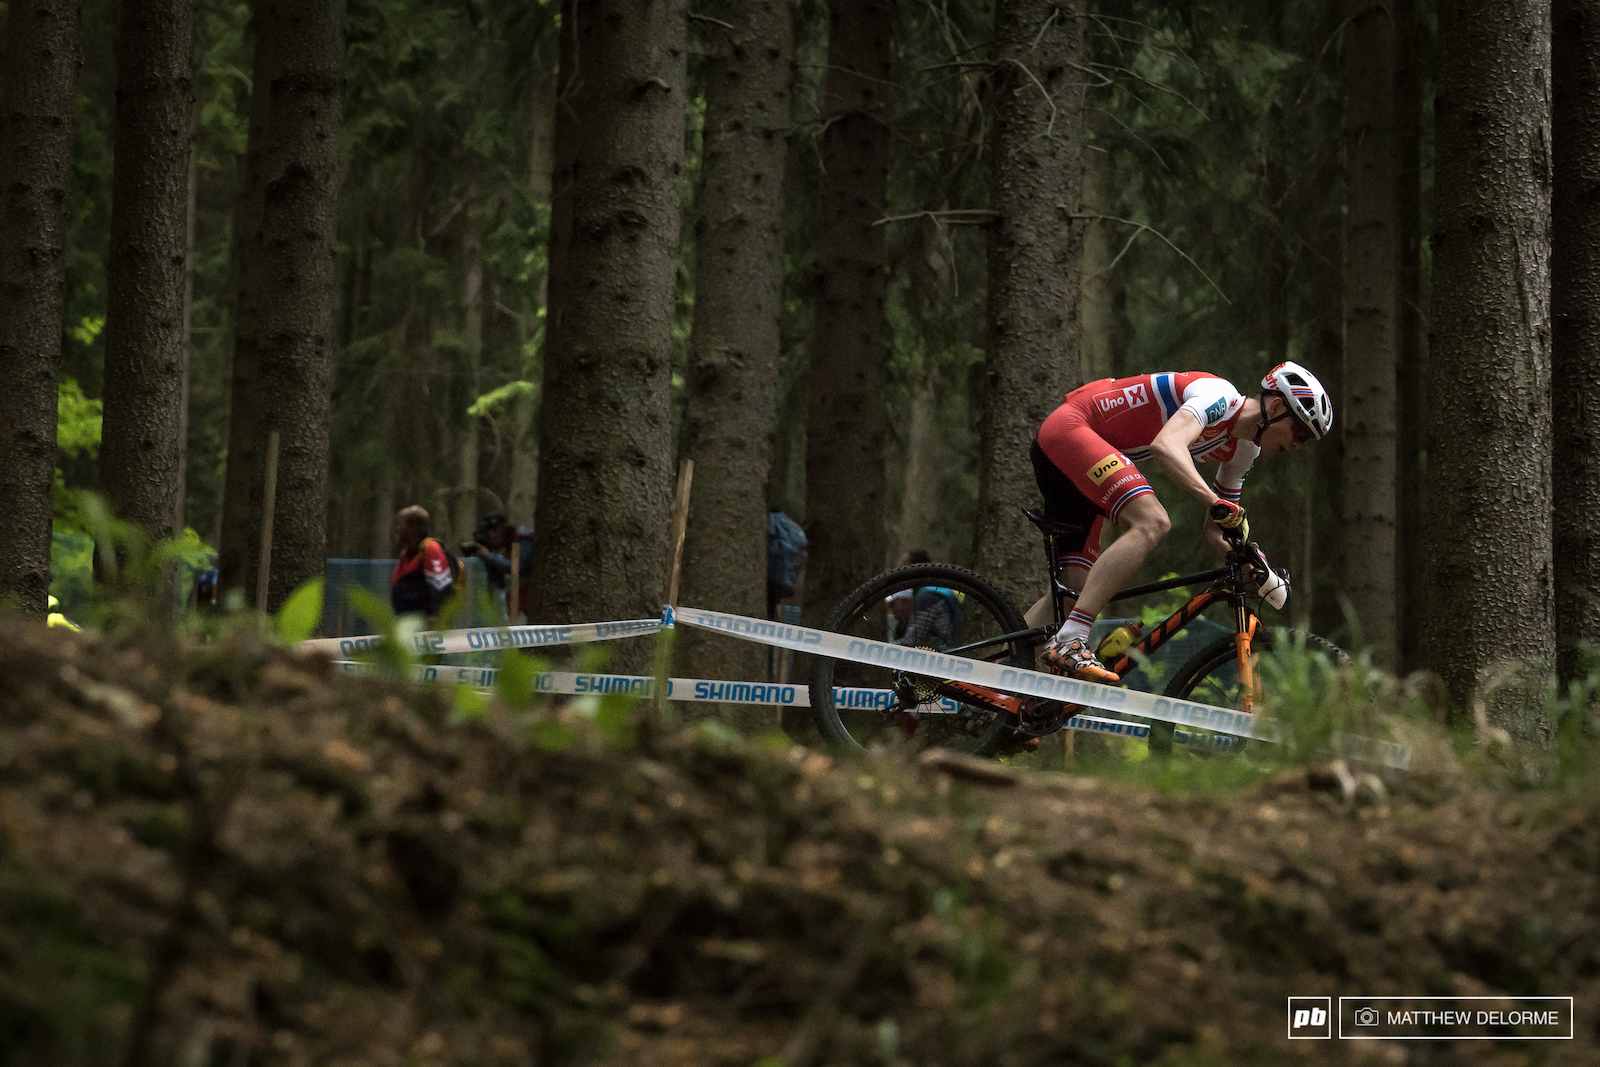 Petter Fagerhaug racing home on the final lap.